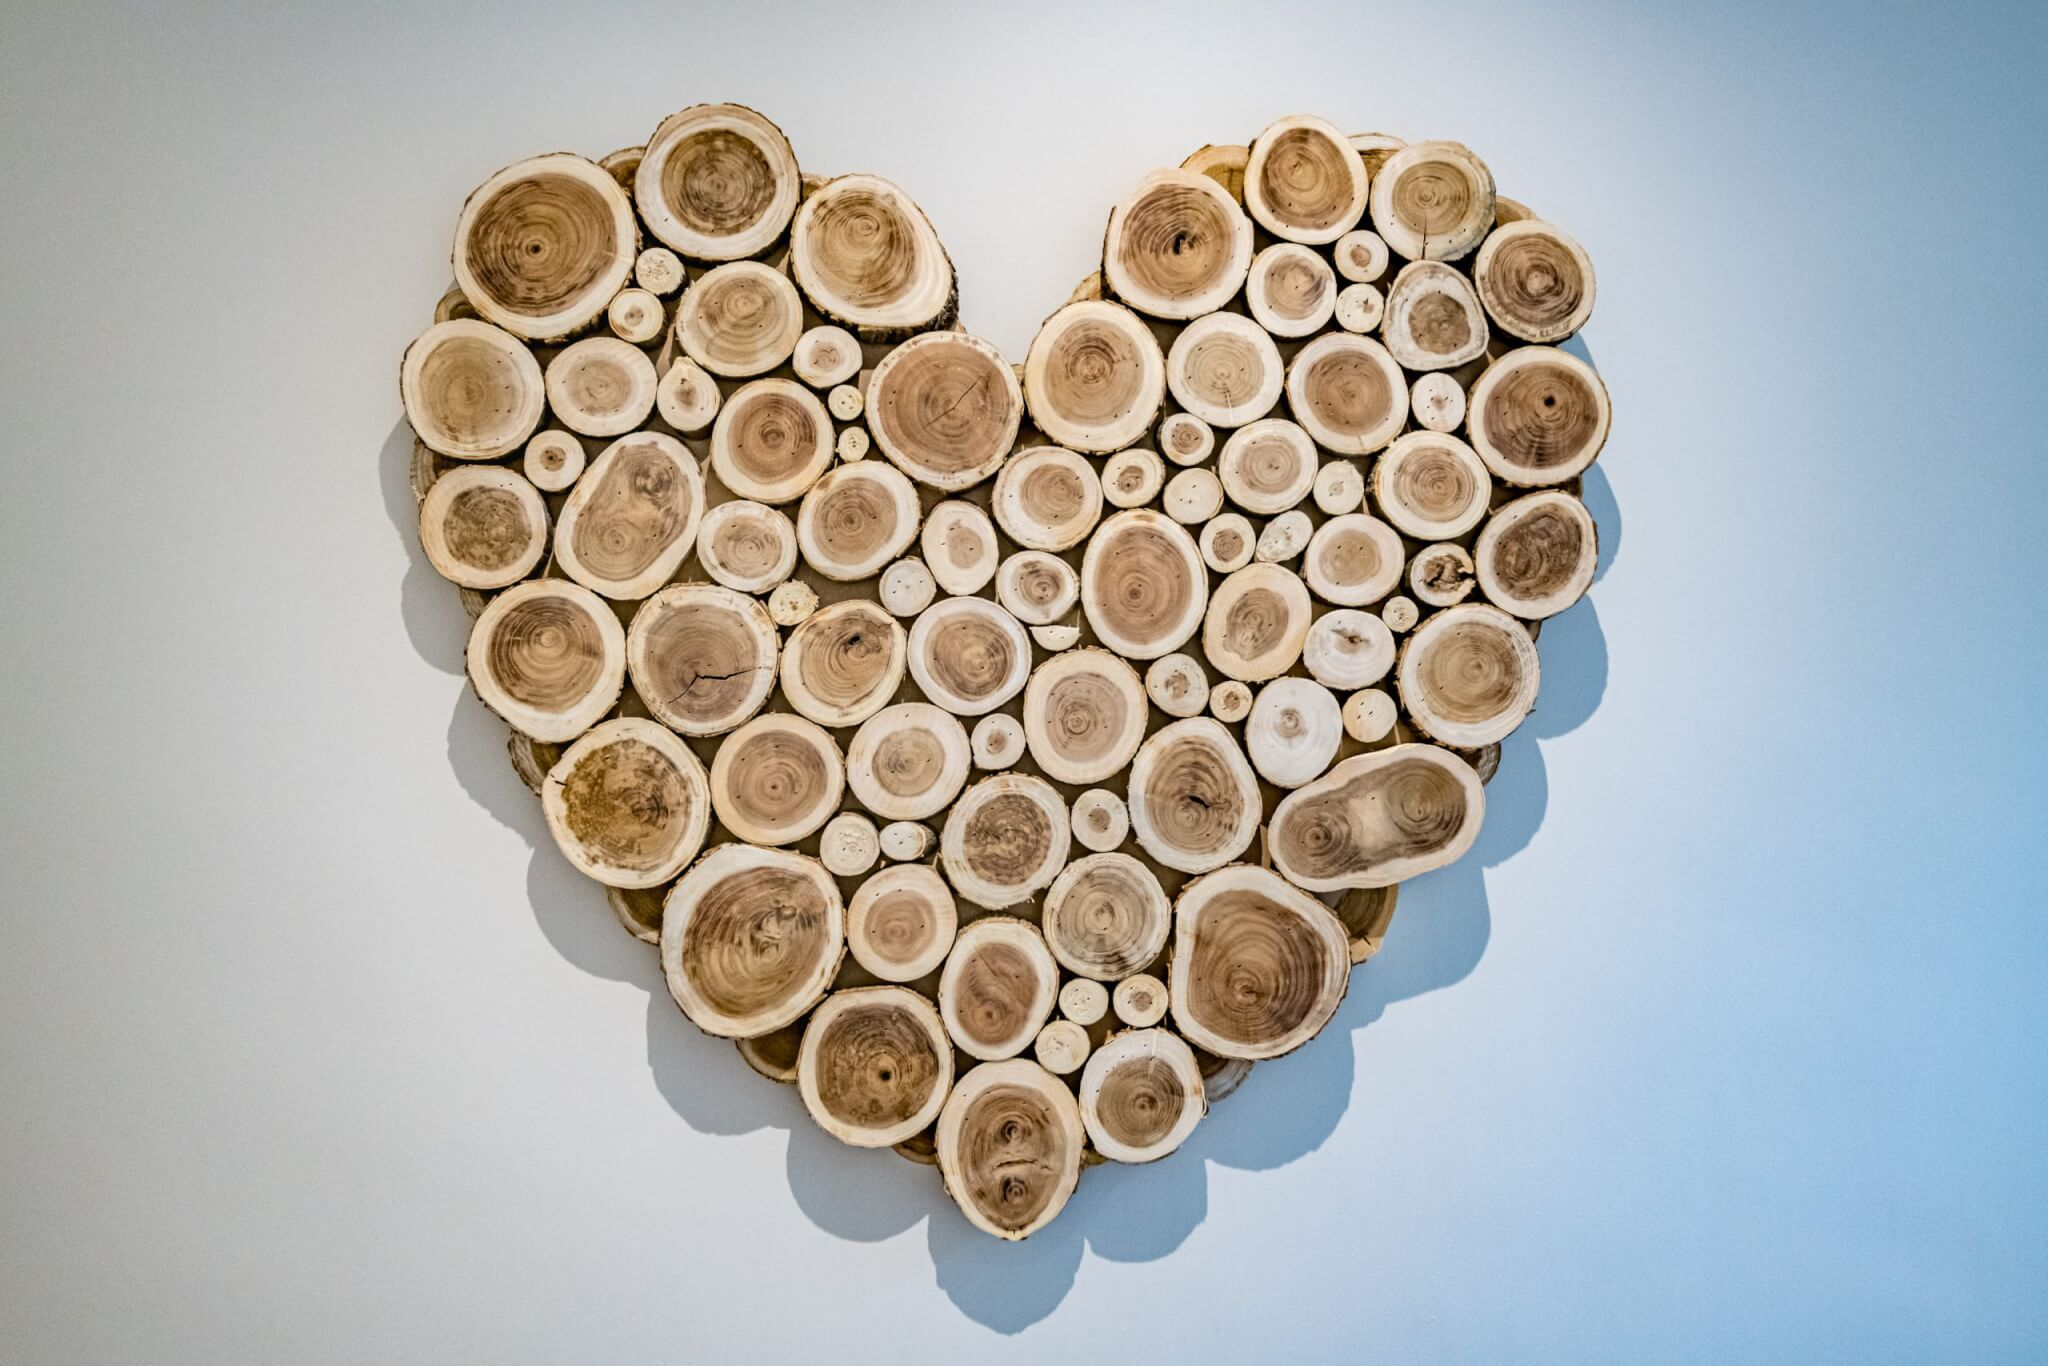 Heart made from logs